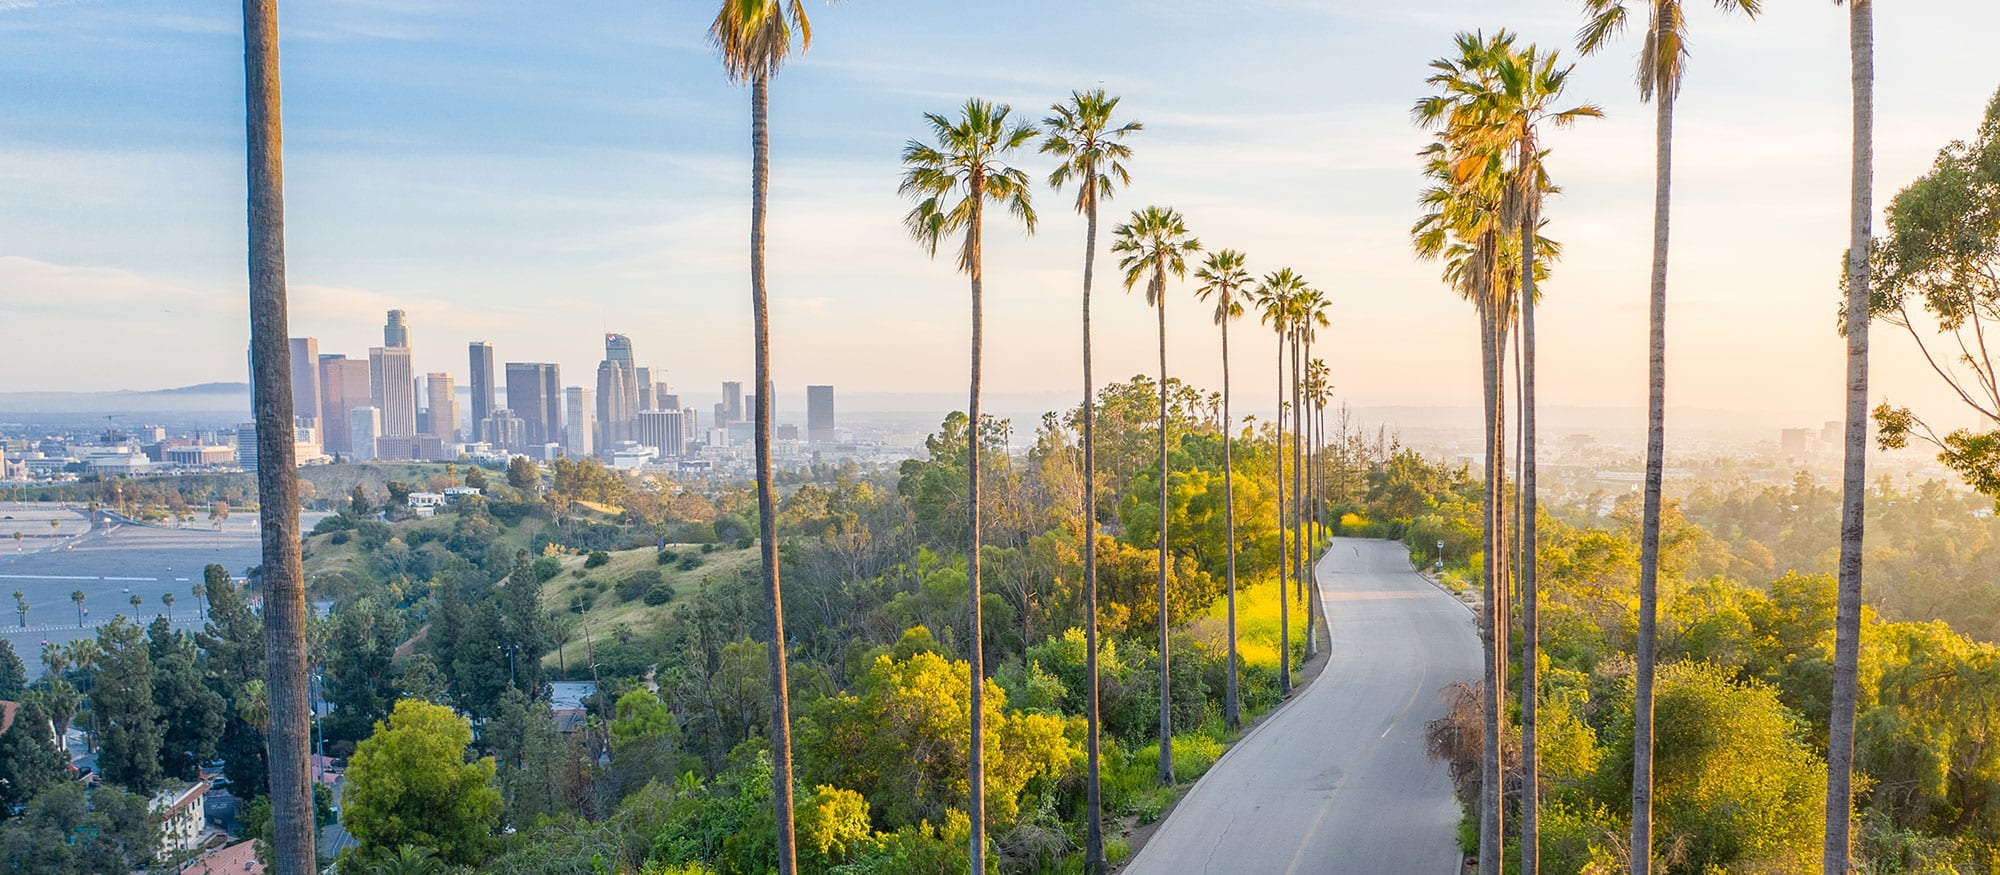 Get Cultured: October 2019 Los Angeles Events